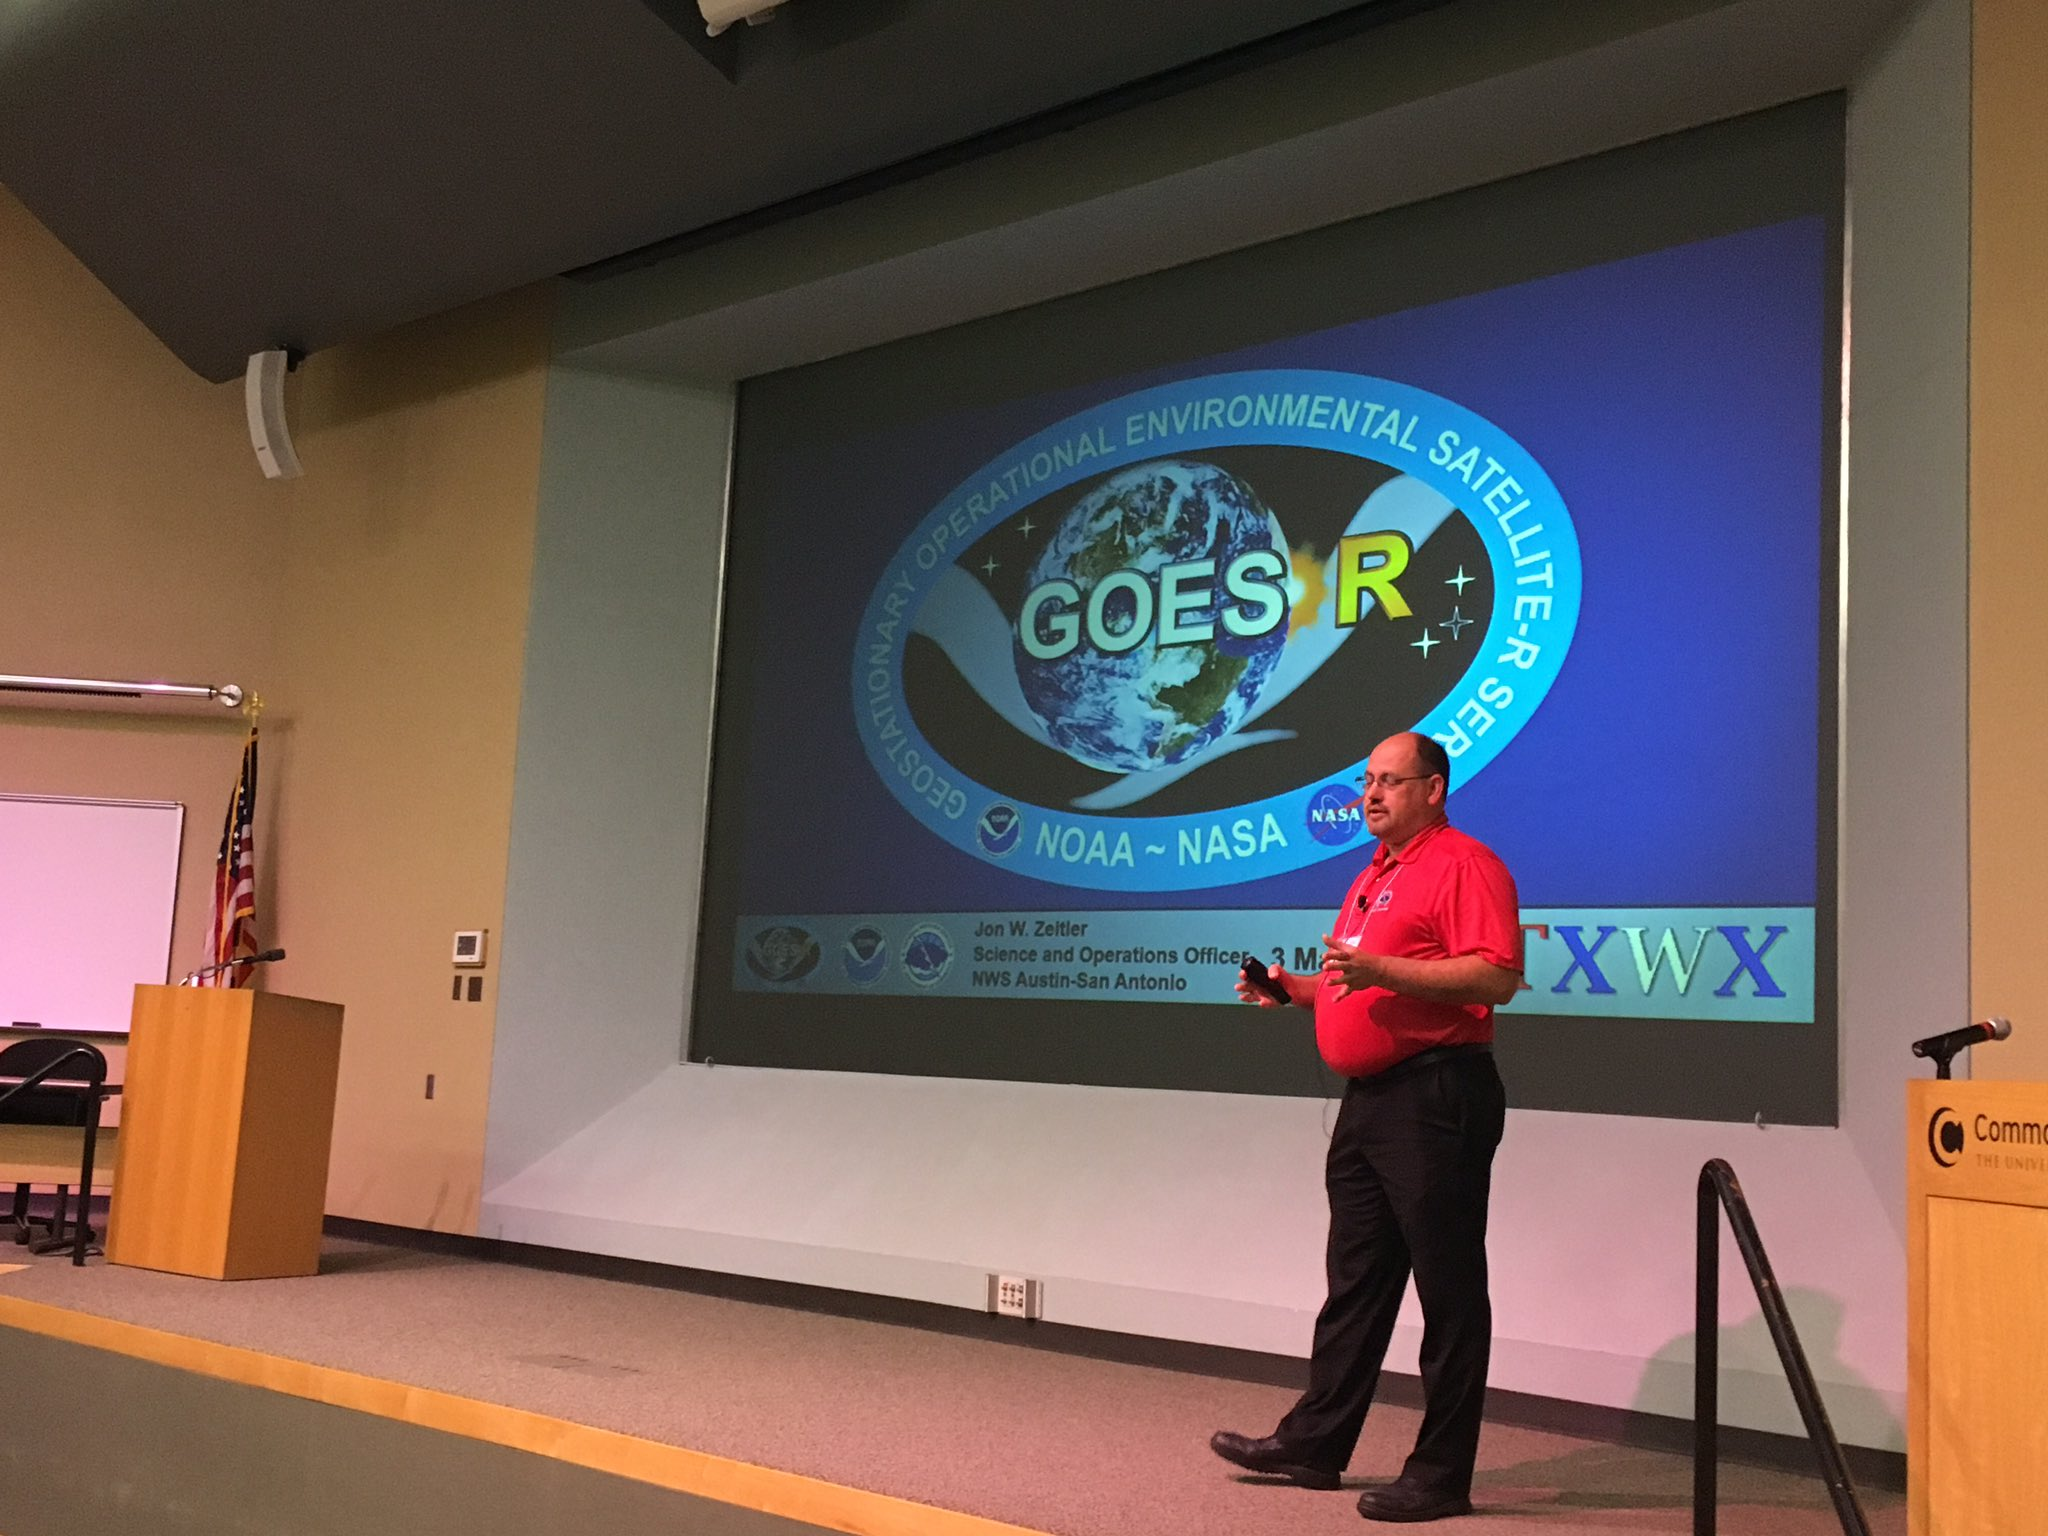 The 2017 Texas Weather Conference is kicked off with @jonzeitler teaching the Goes-R short course. #txwx2017 https://t.co/KAk31zj9Ij